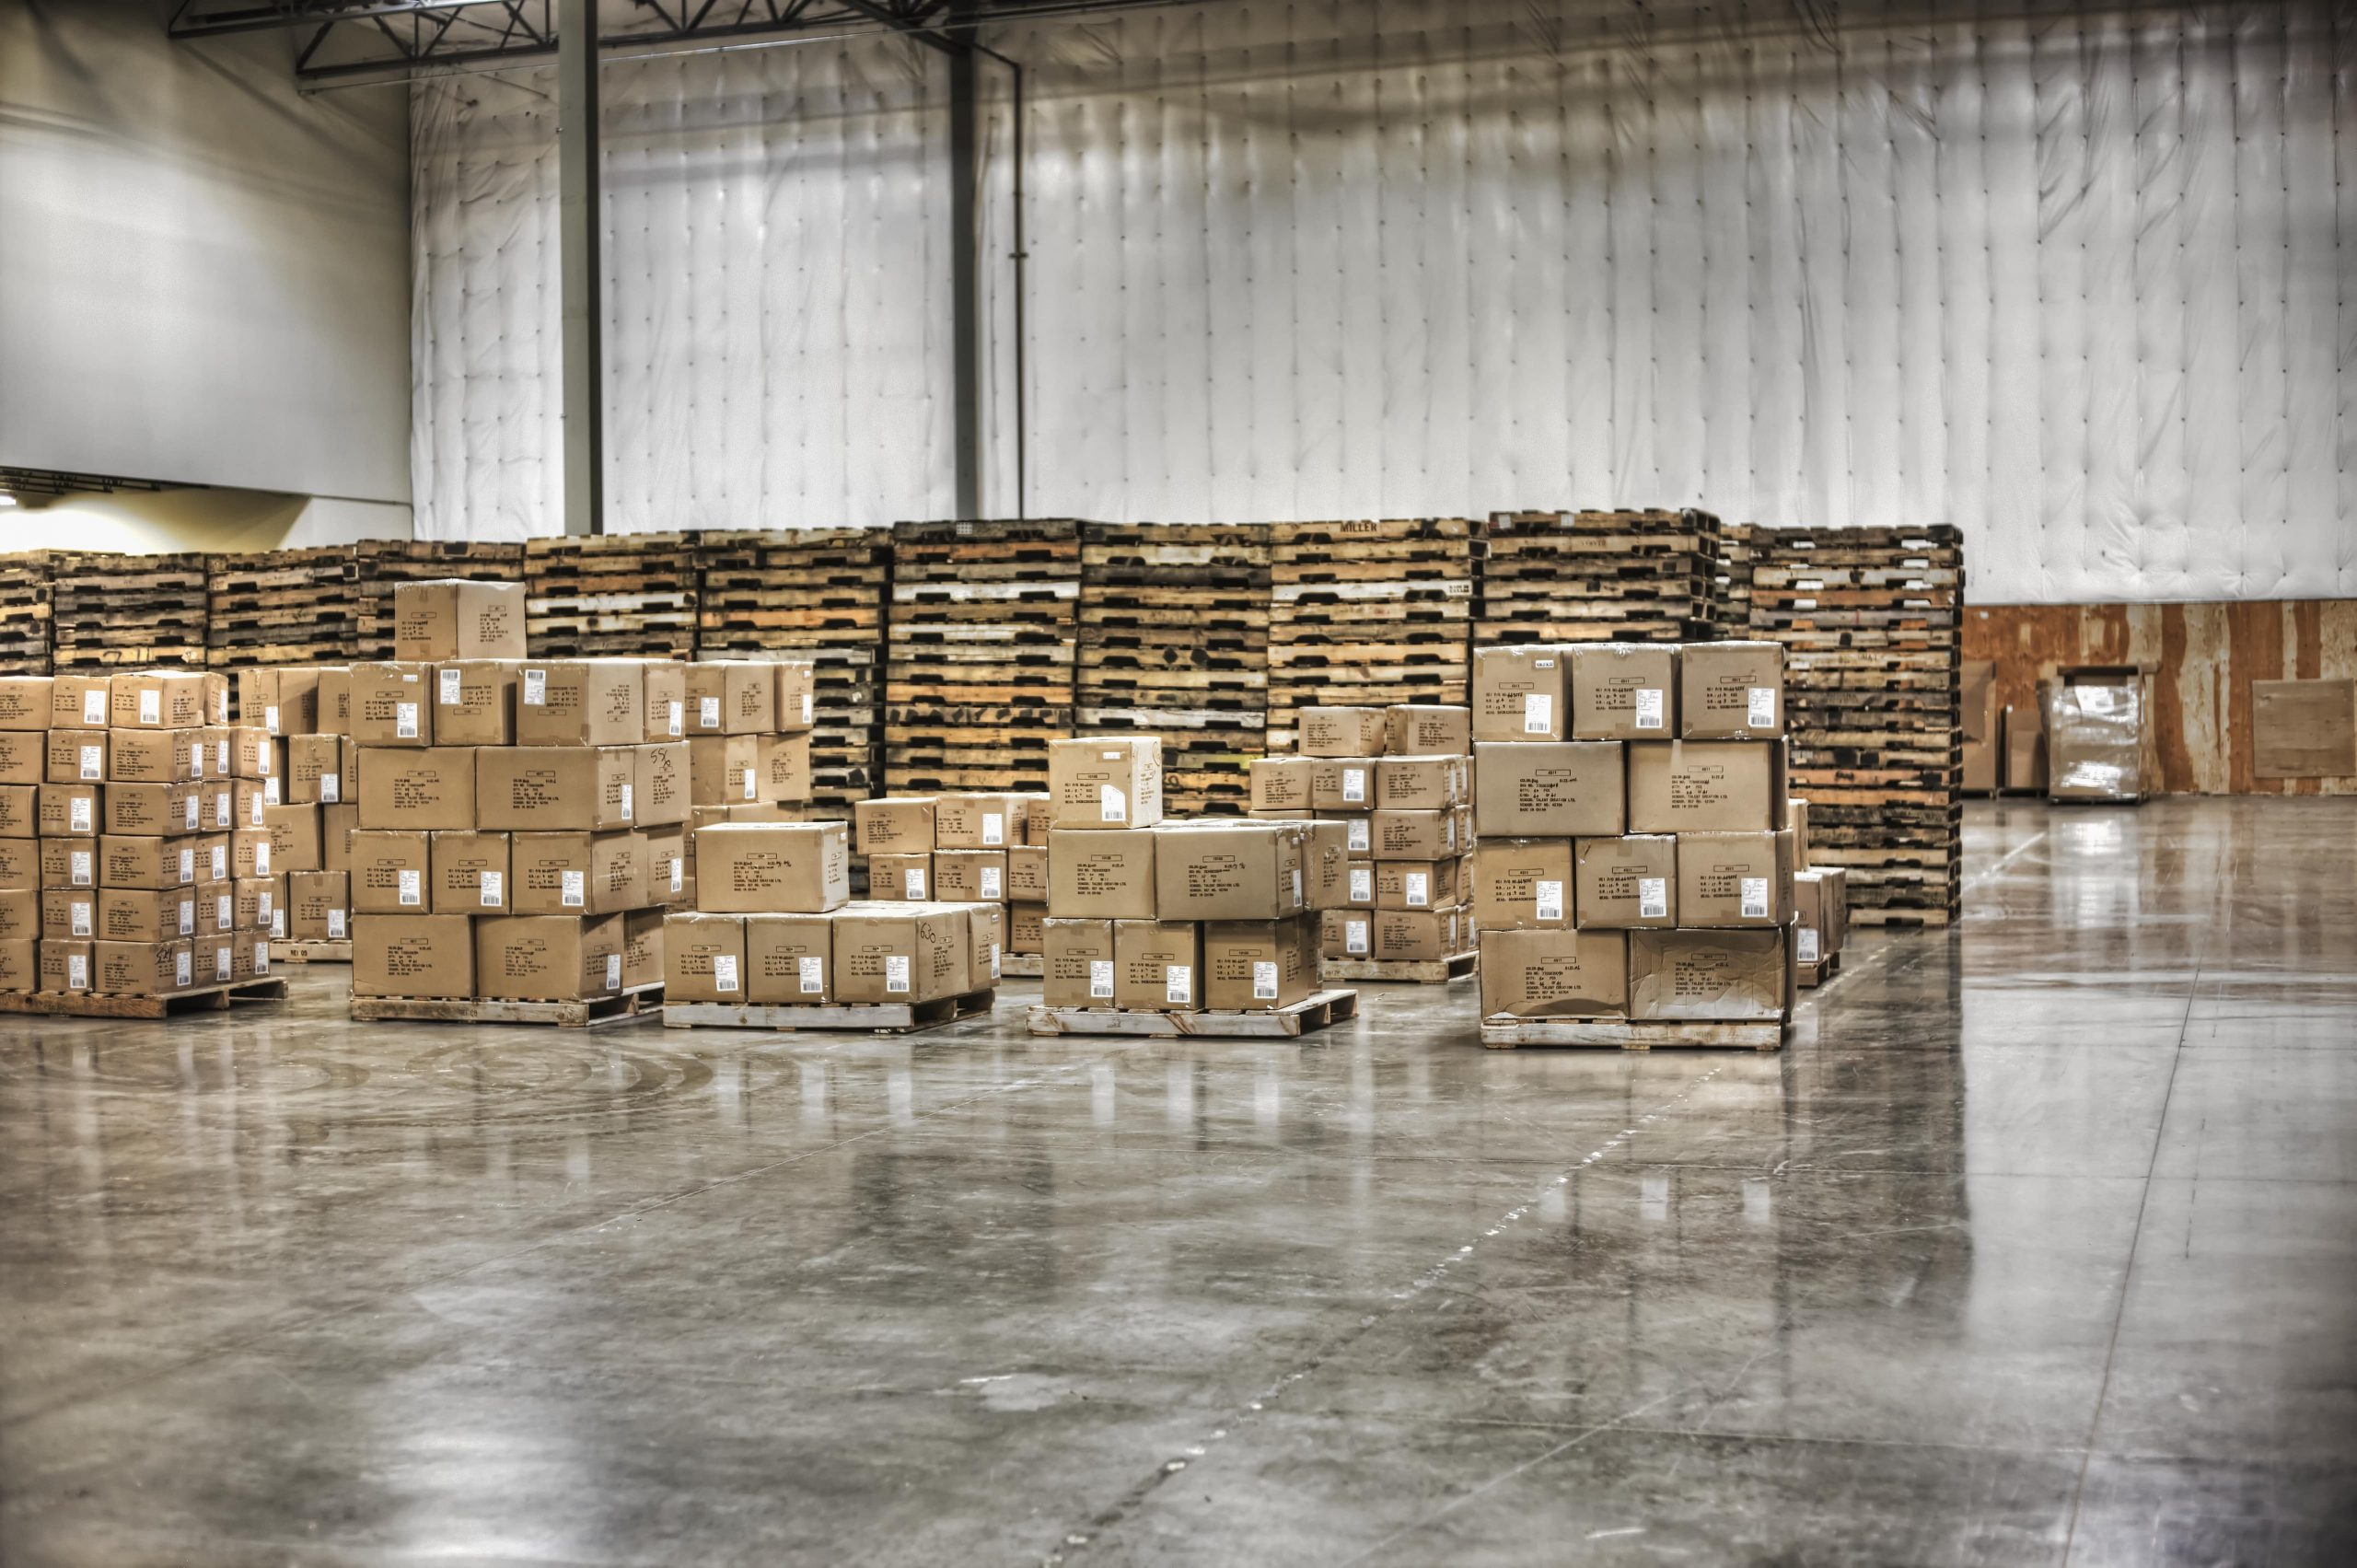 cardboard-boxes-and-pallets-in-warehouse-WG8D3XB-min